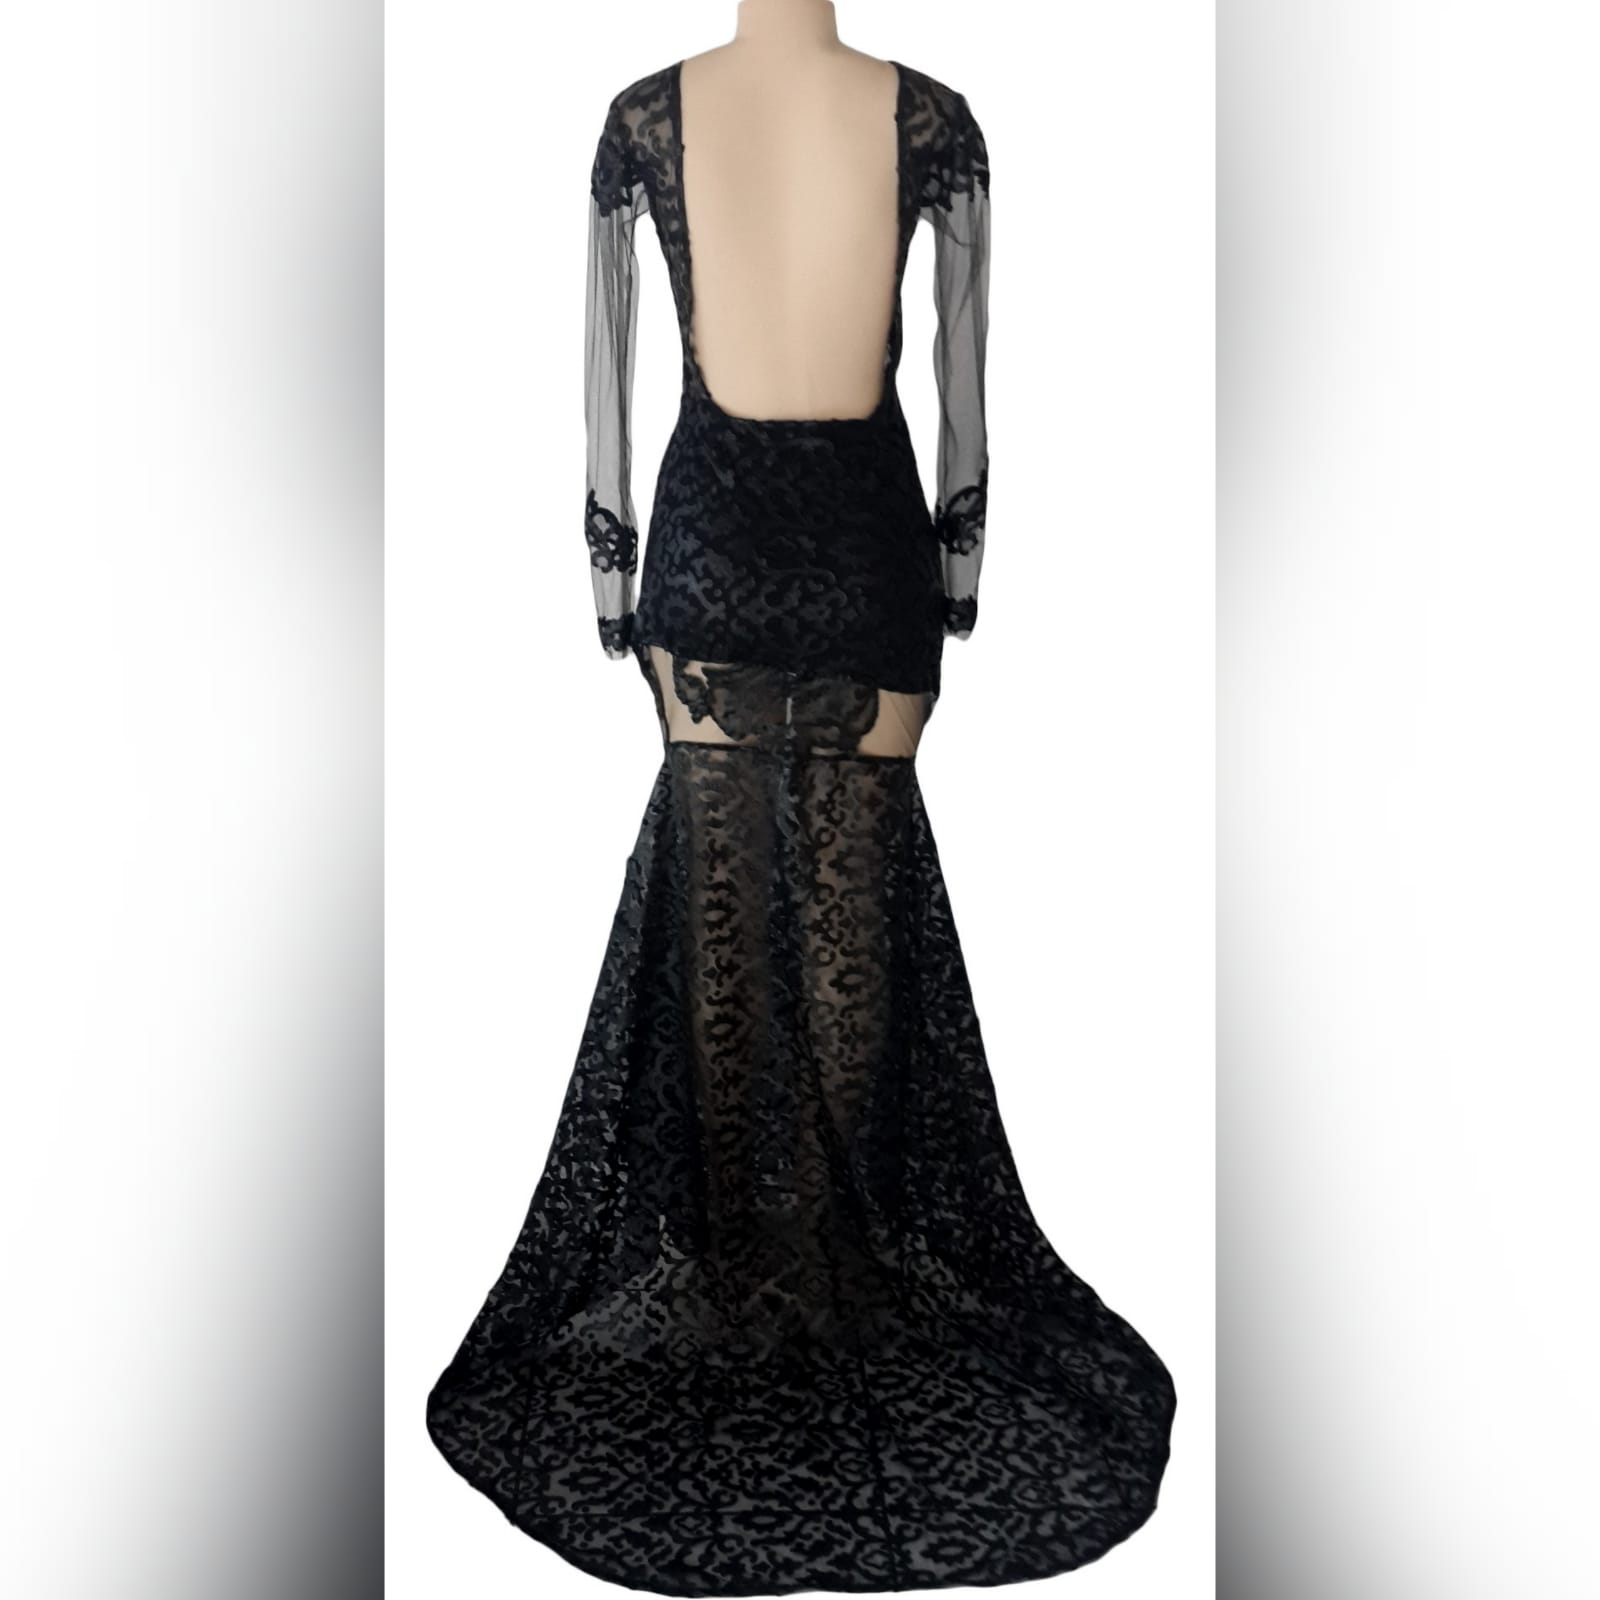 21st birthday party black dress 5 black long suede lace evening dress for 21st birthday party, with sheer black long sleeves and sheer thigh area, with a train and an open back